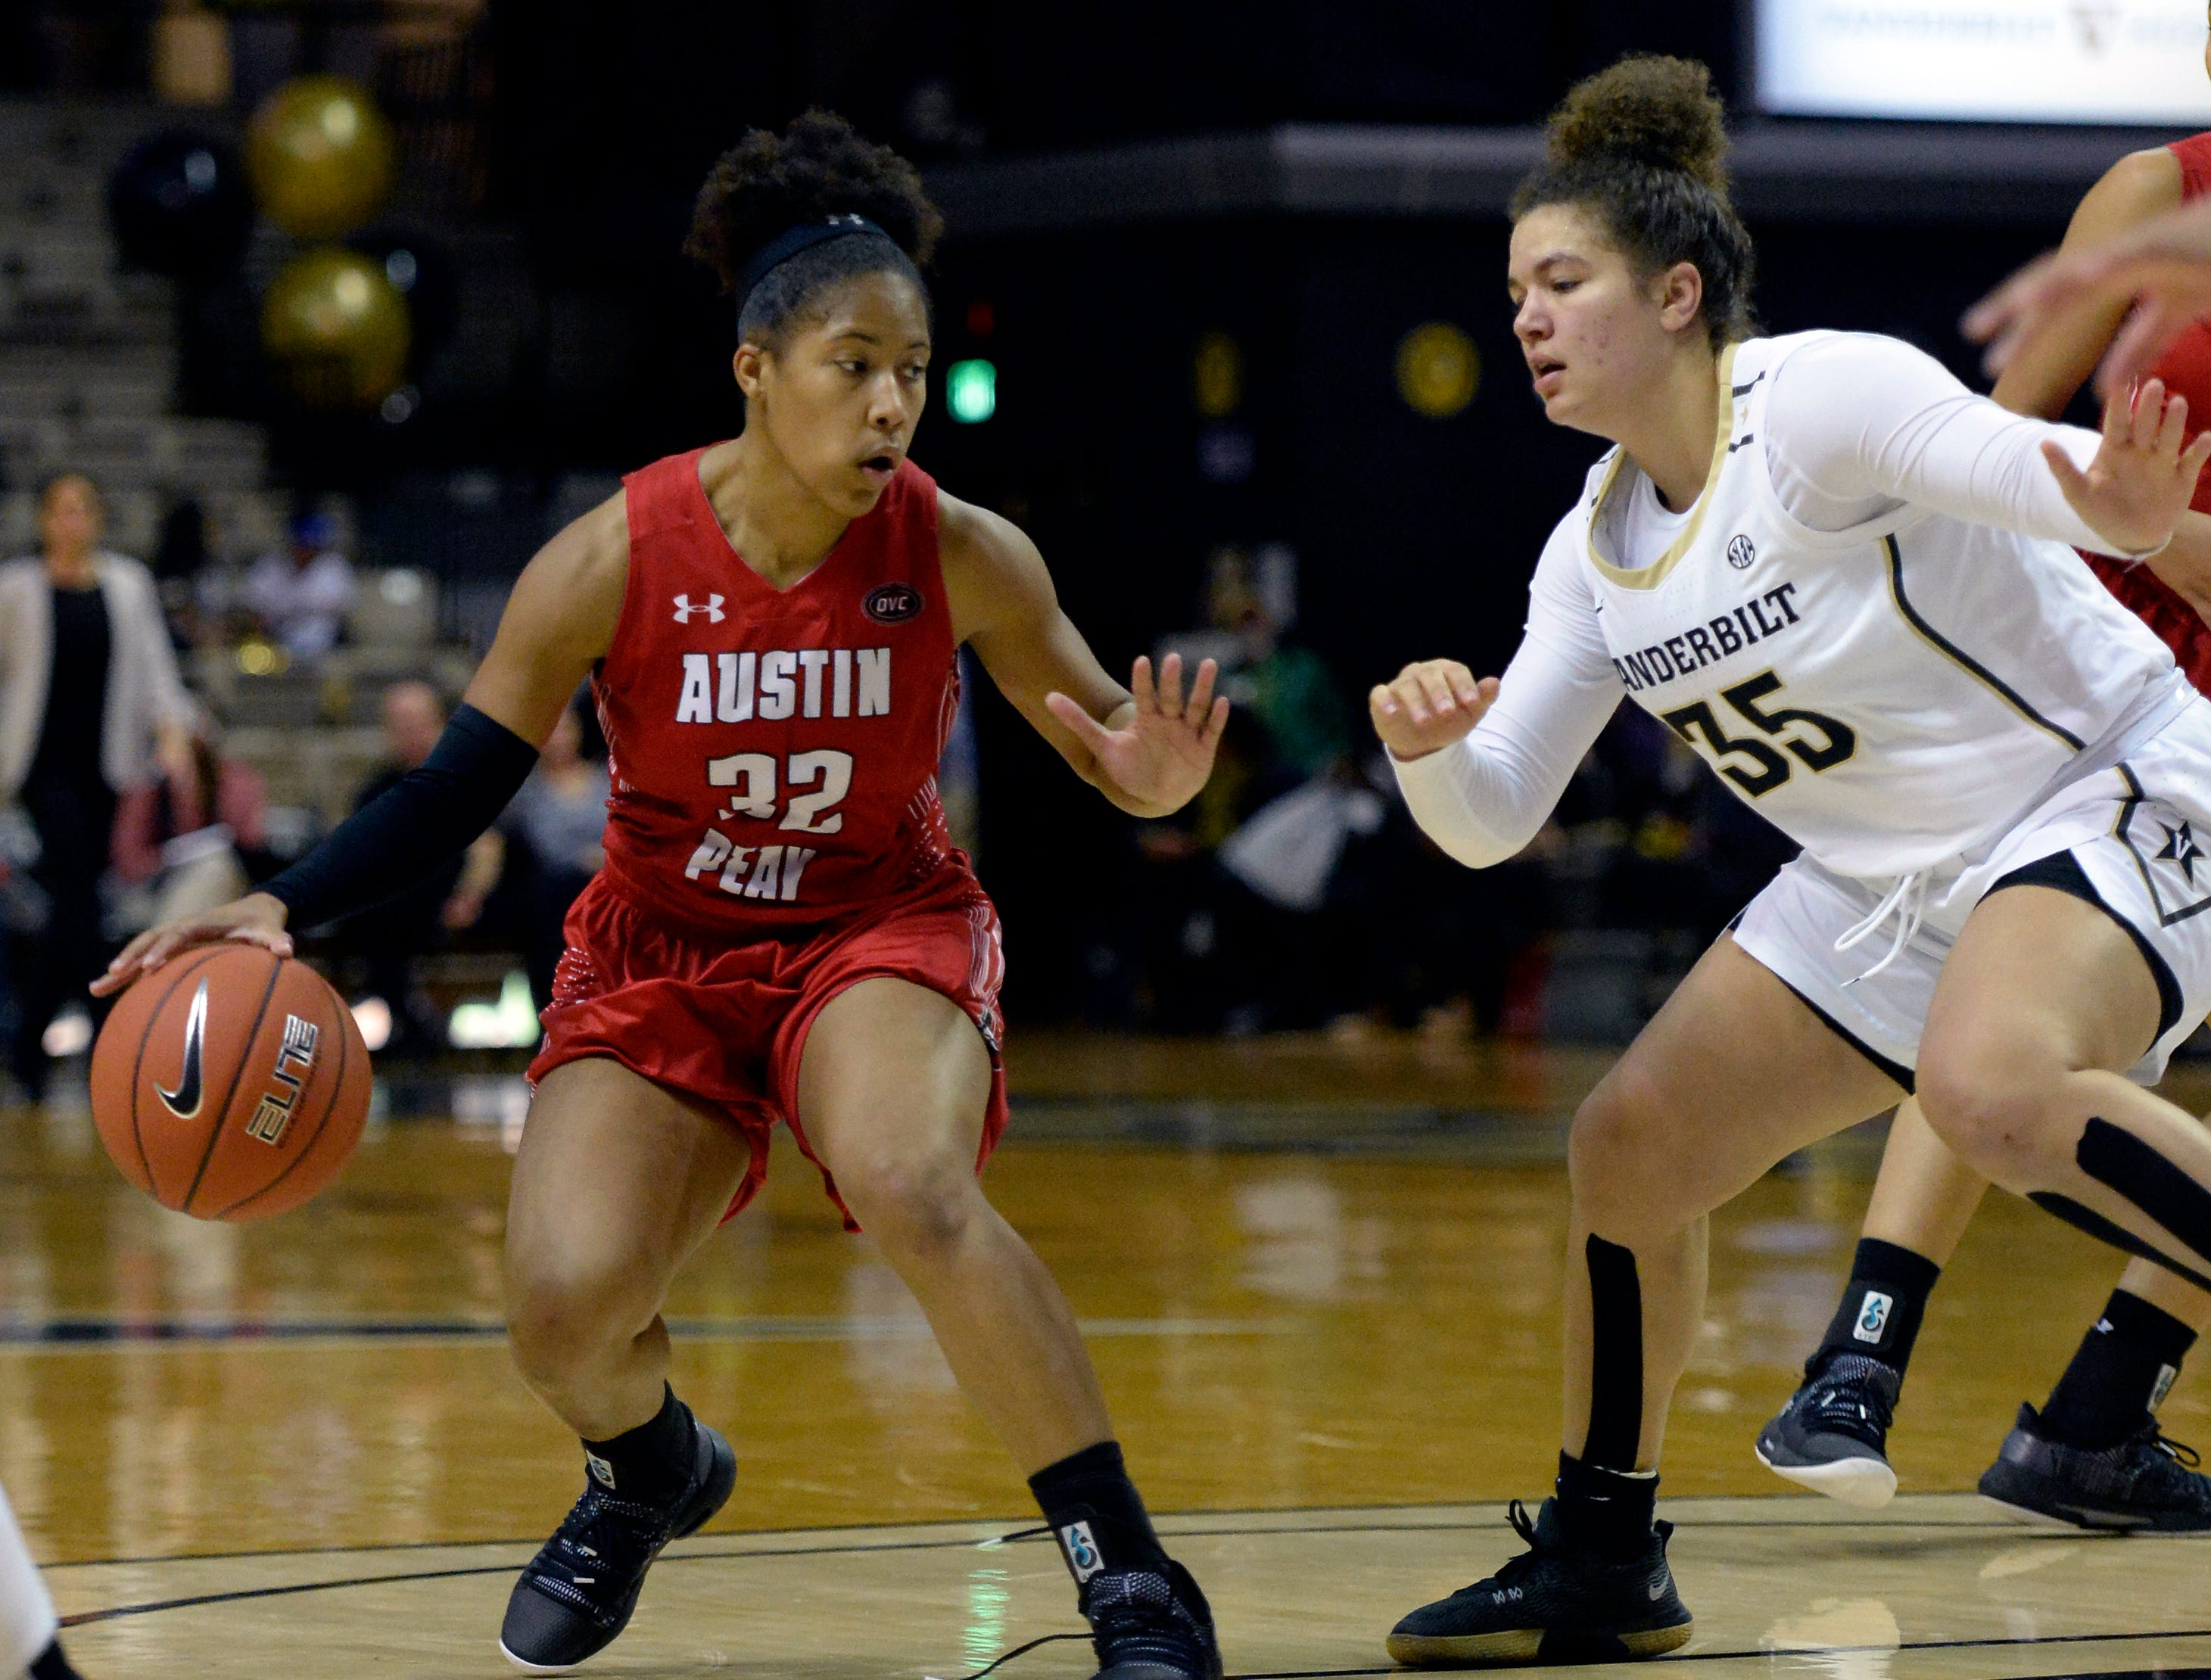 Austin Peay guard Brianah Ferby (32) is defended by Vanderbilt guard Kaleigh Clemons-Green (35) during the second half of an NCAA college basketball game Monday, Nov. 12, 2018, in Nashville, Tenn. Vanderbilt won 99-70.